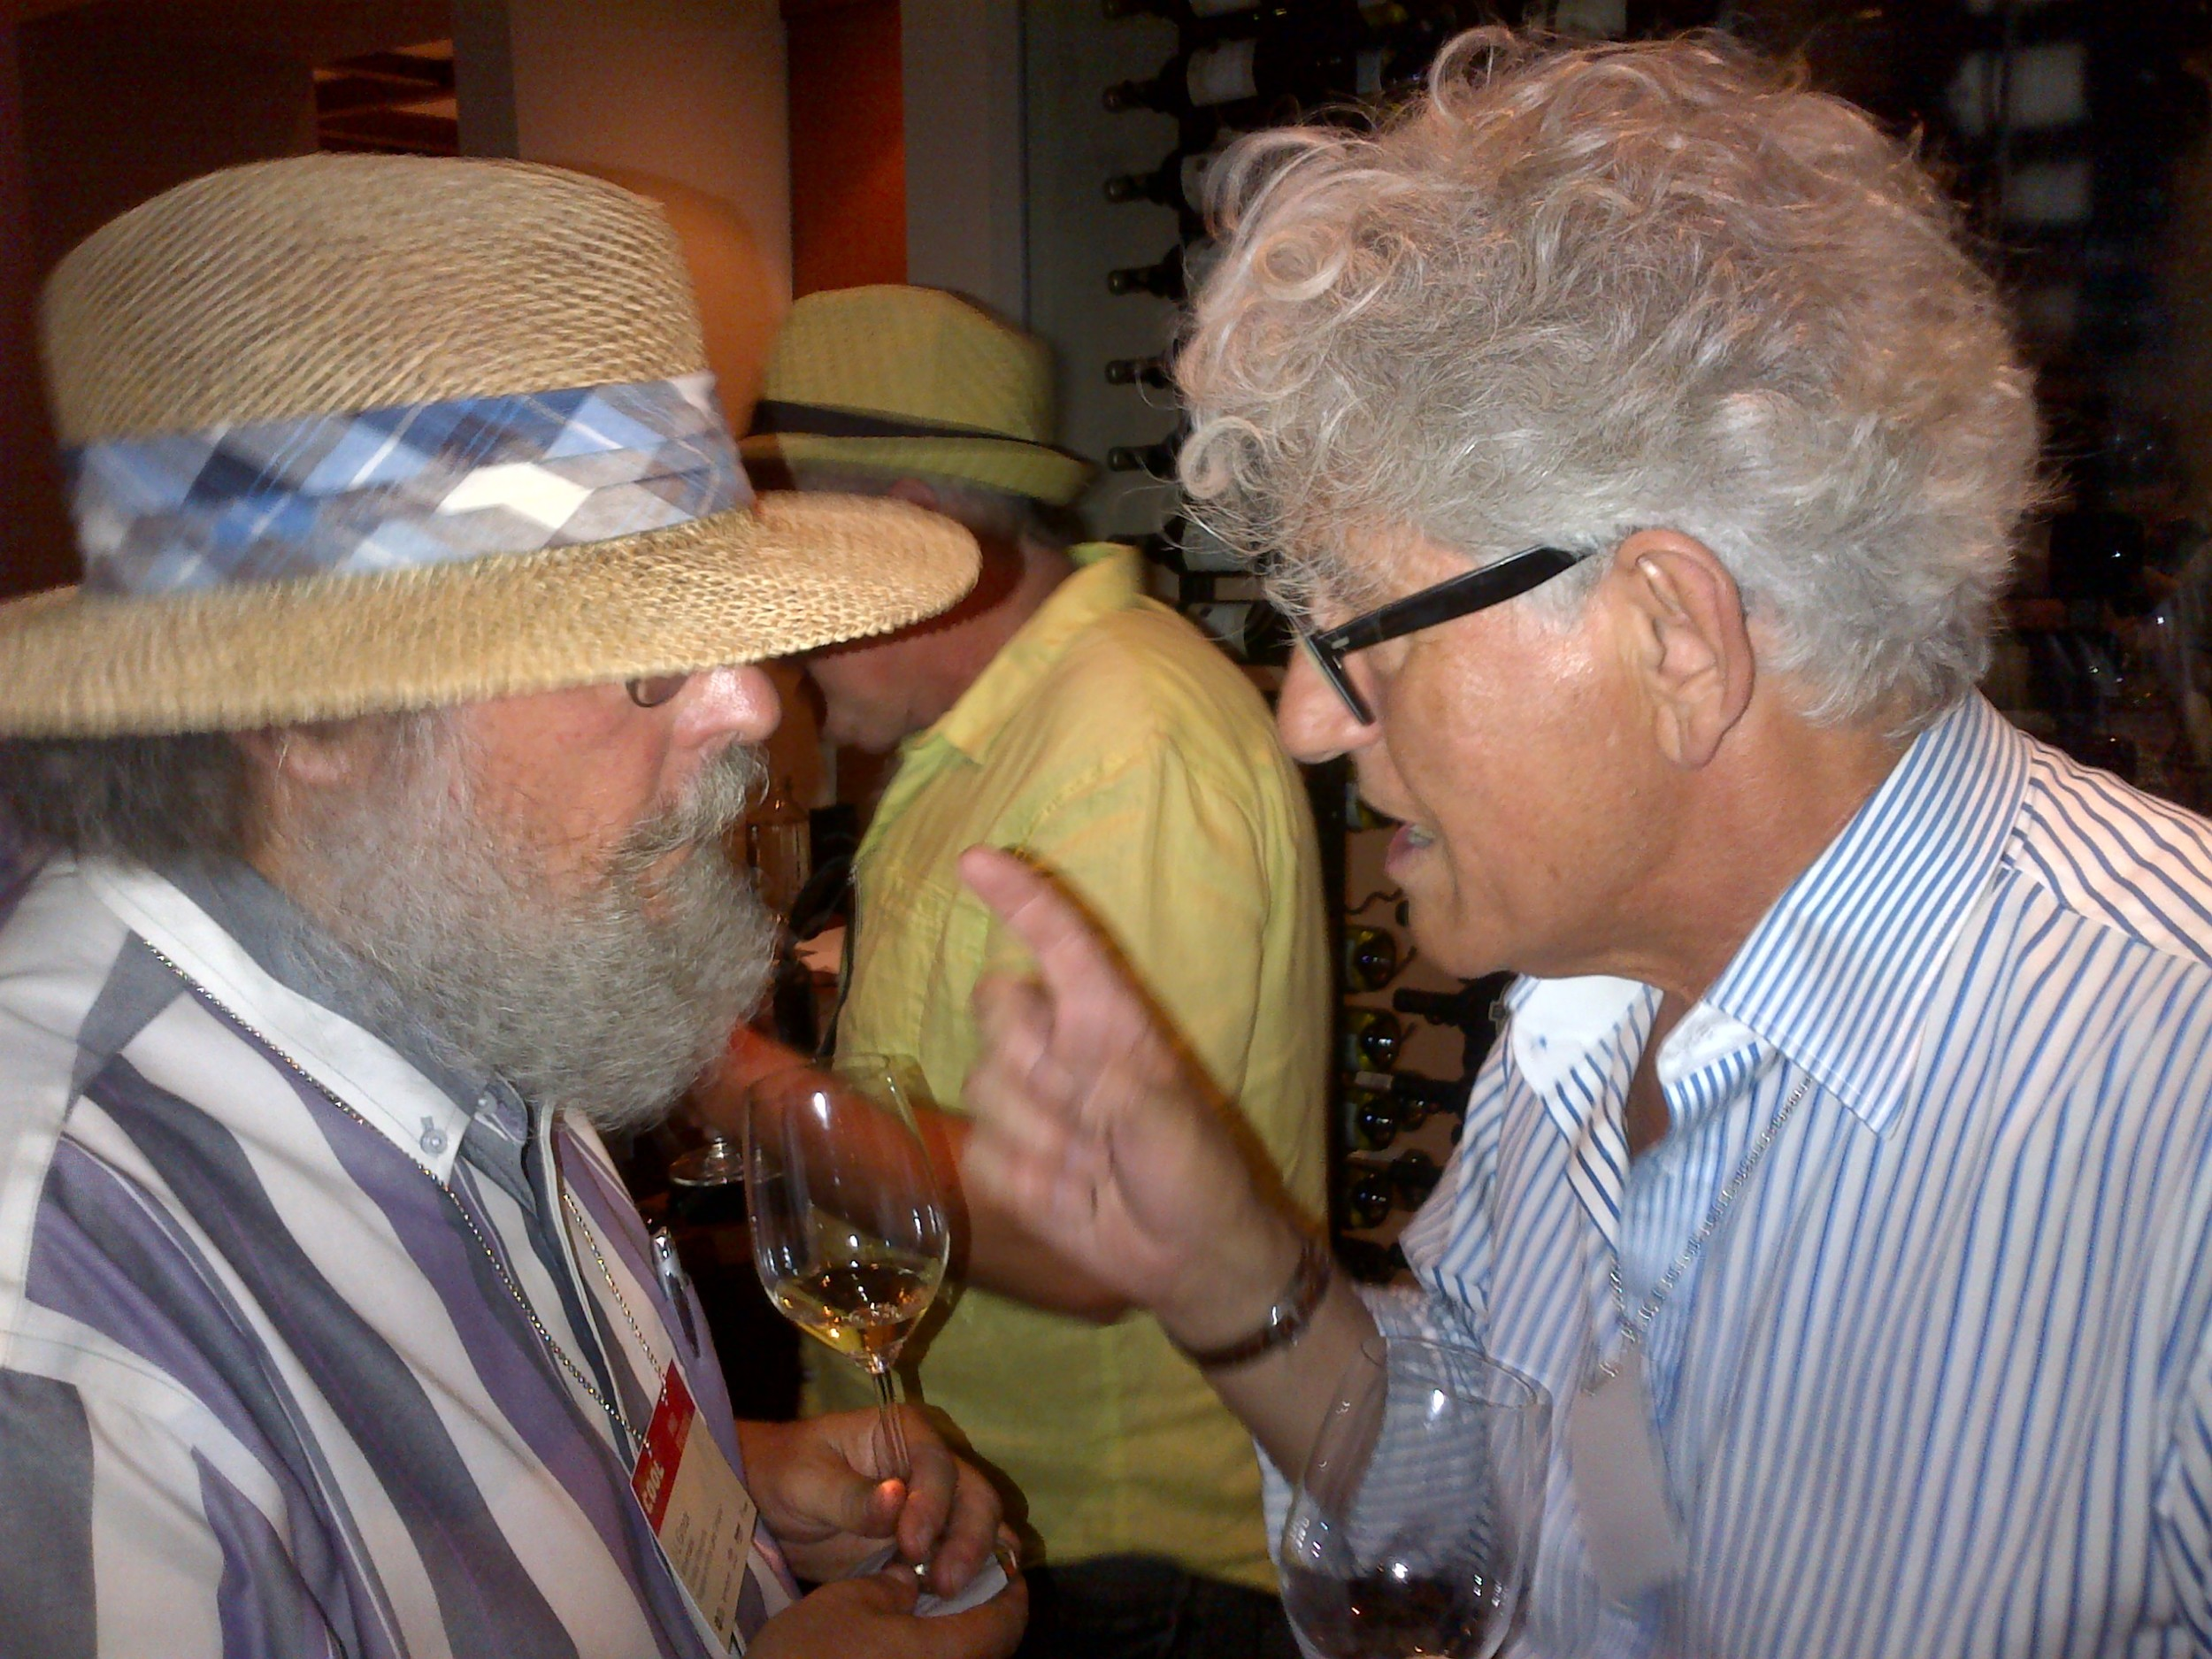 Jacques Lardiere of Louis Jadot giving some seemingly stern Chardonnay advice to Stratus'    J-L Groux.